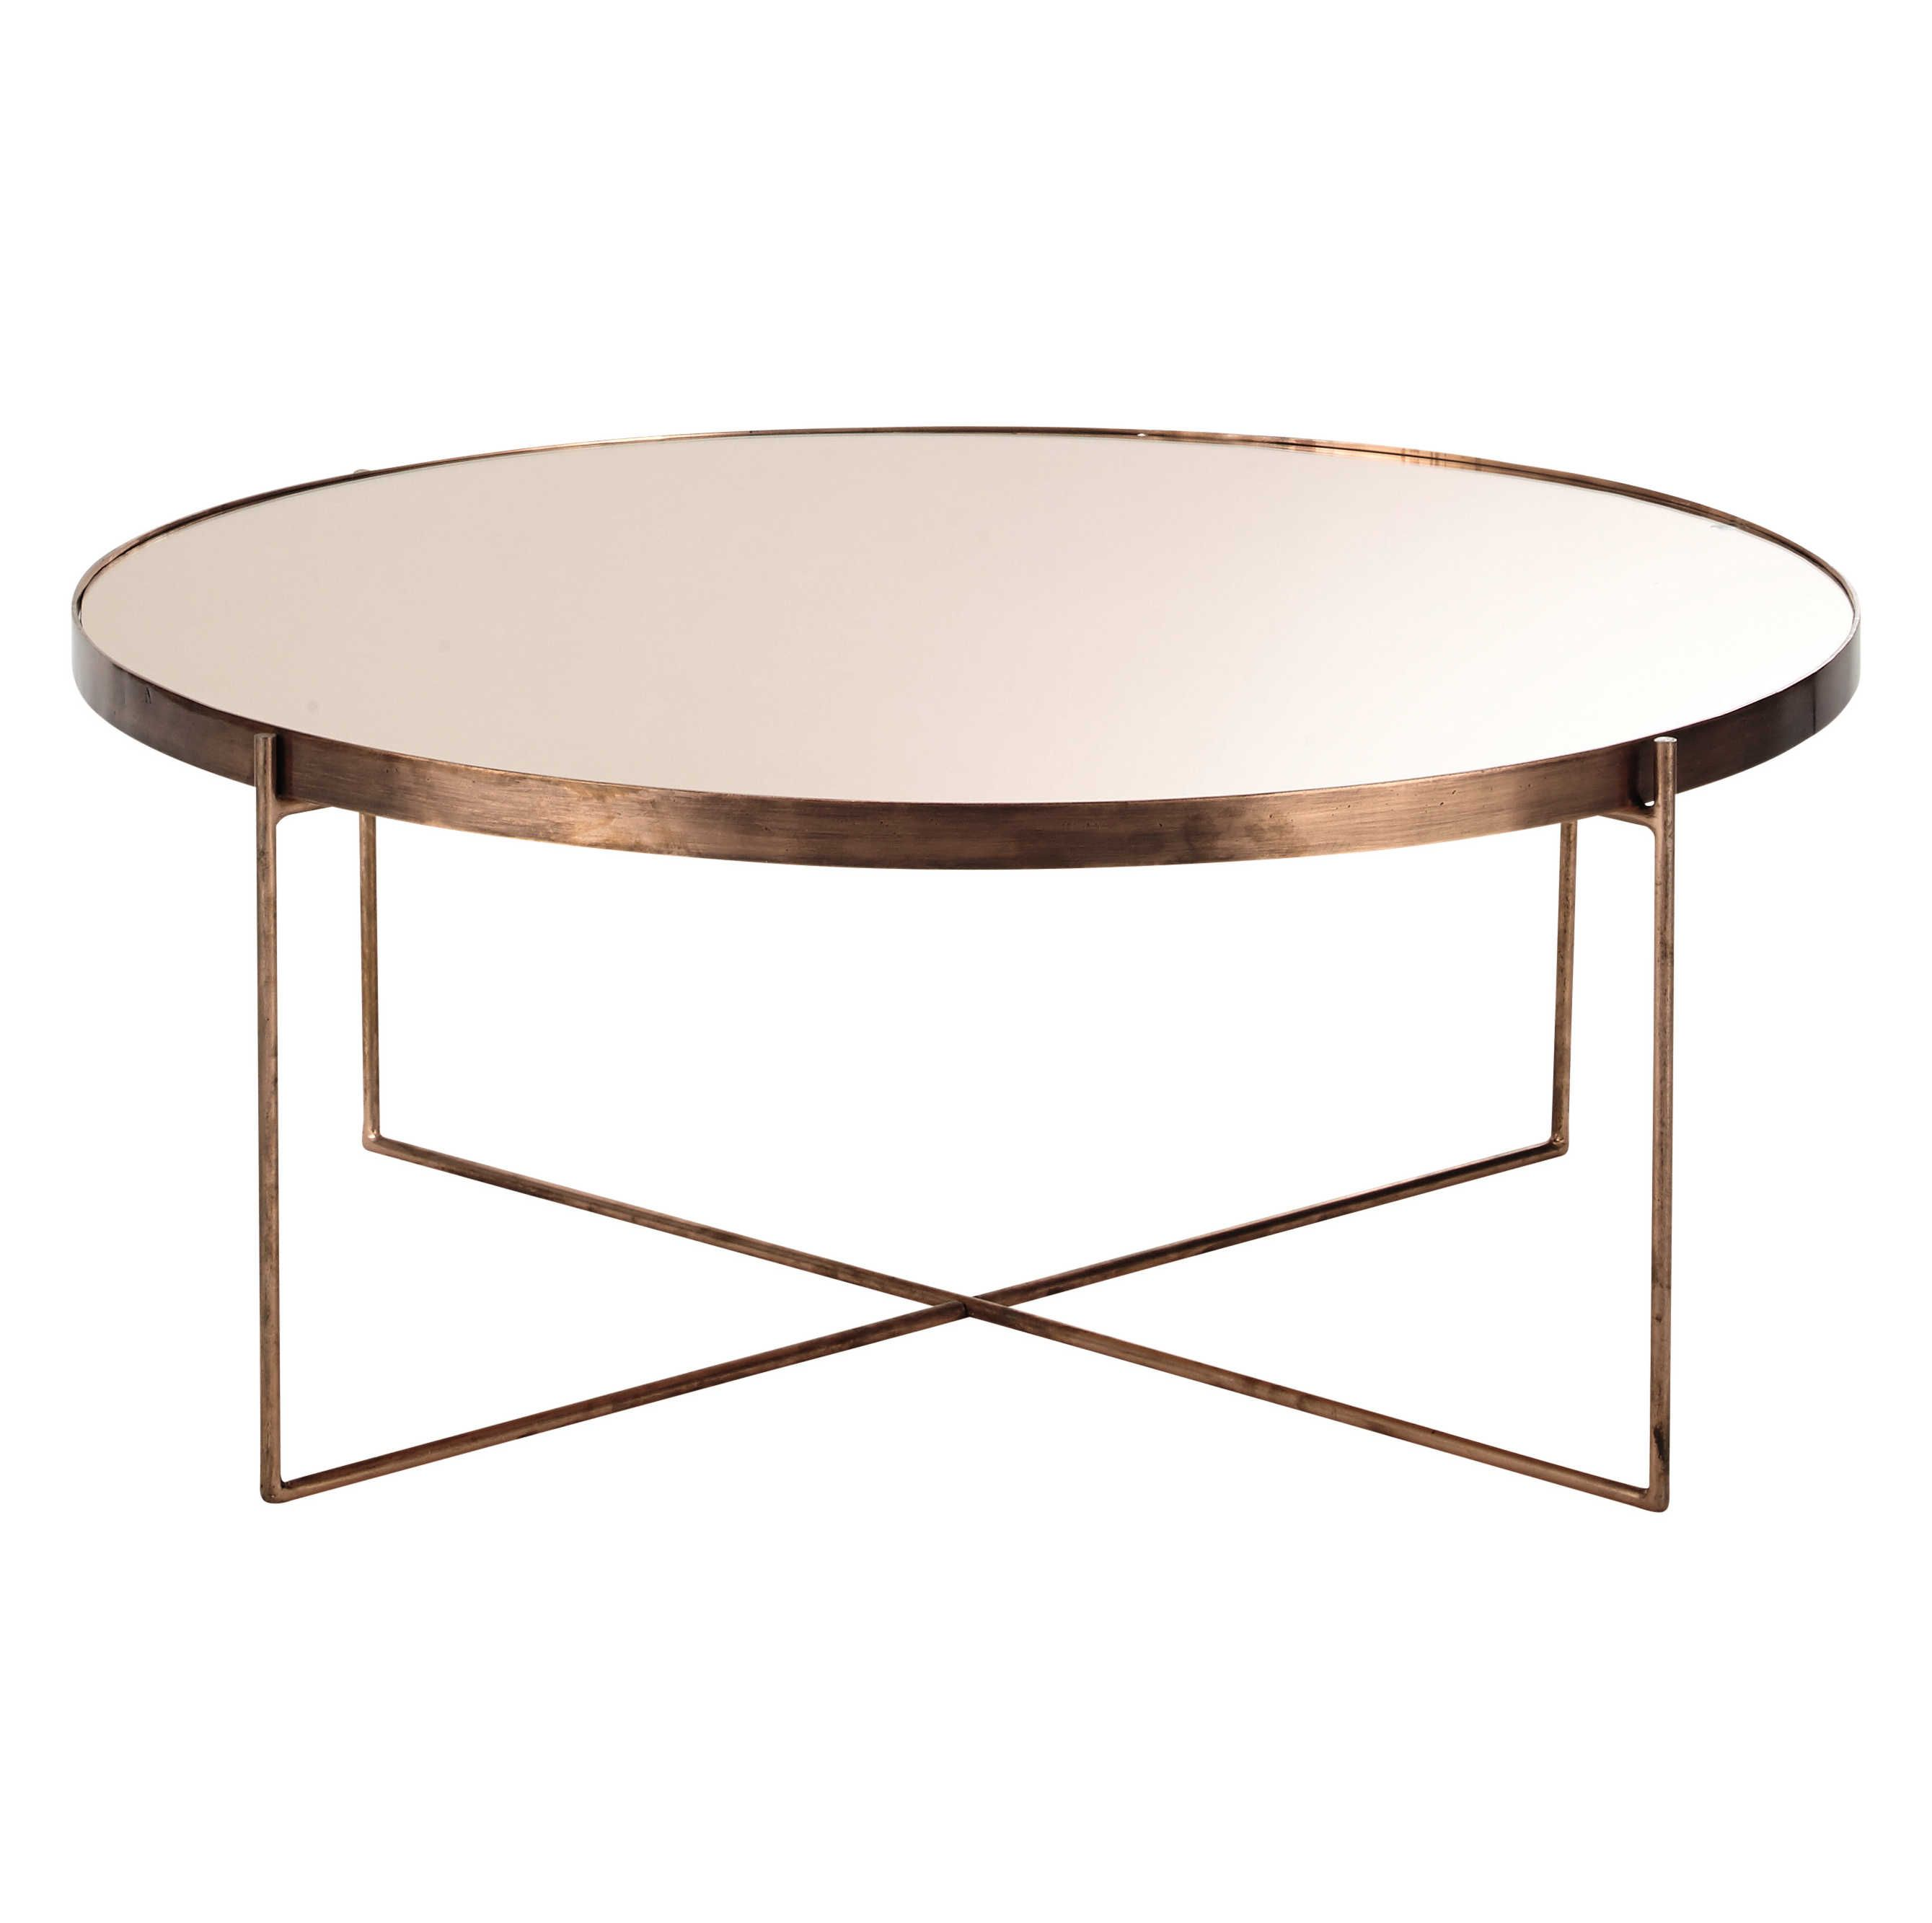 This copper plated metal mirror coffee table is stunning We need